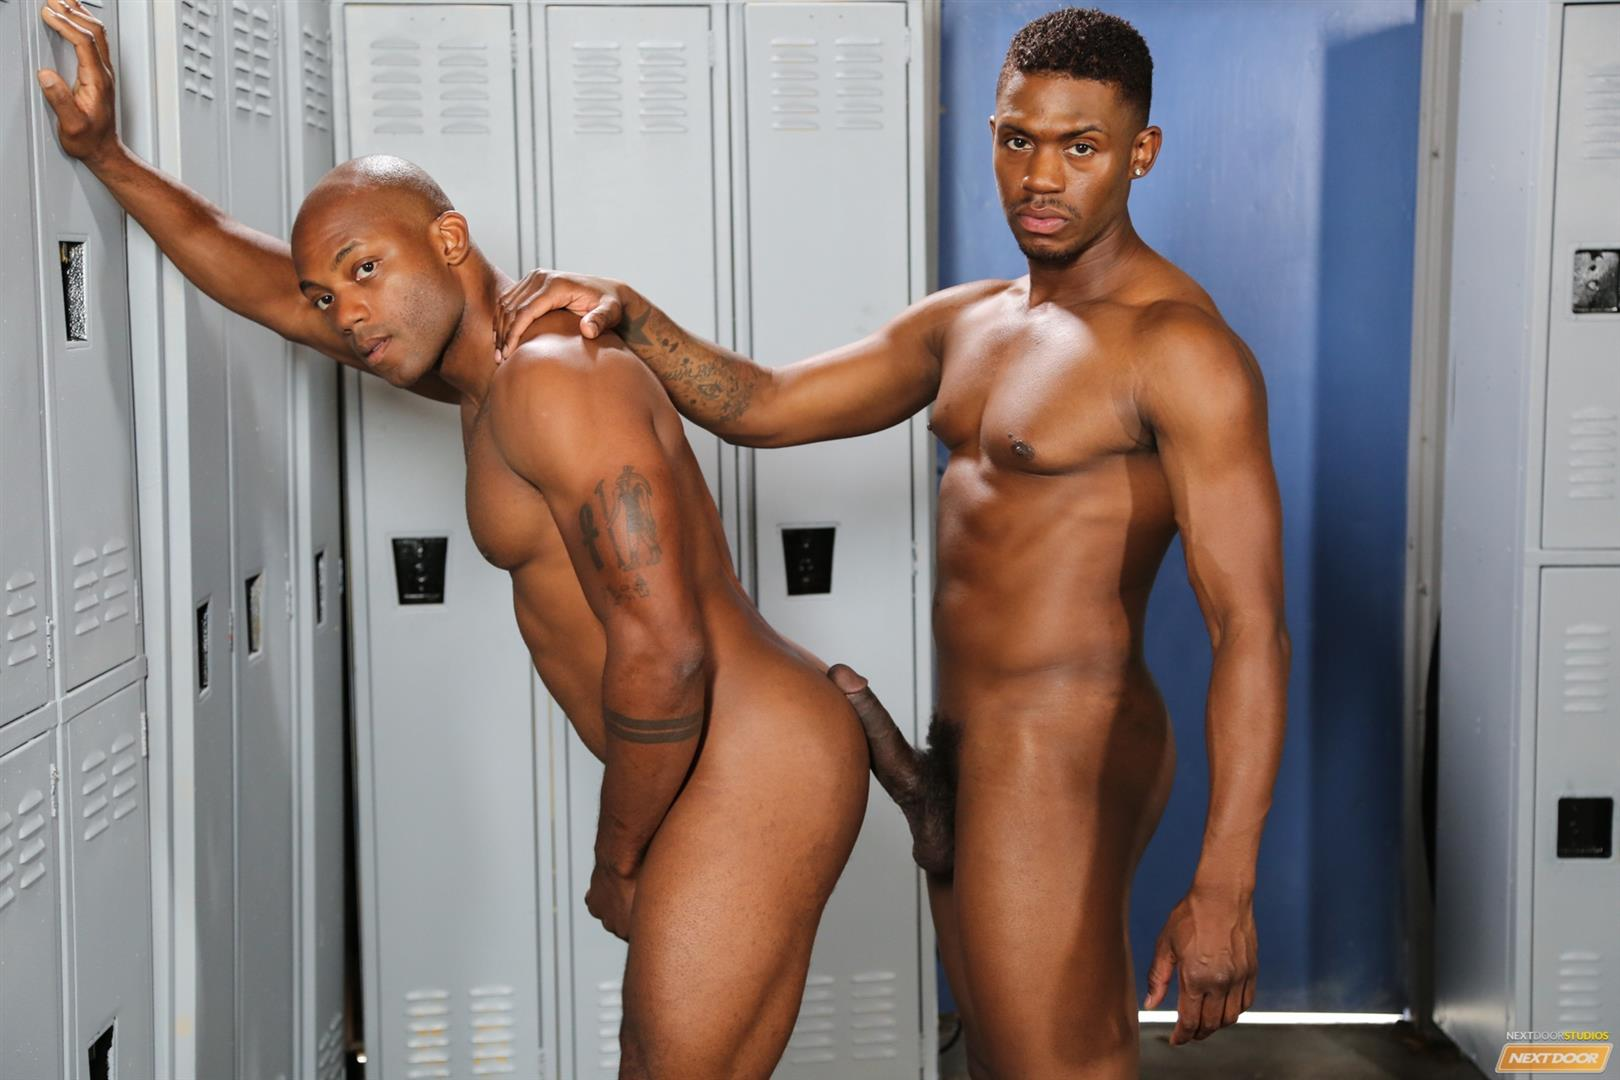 Muscular black men fucking each other